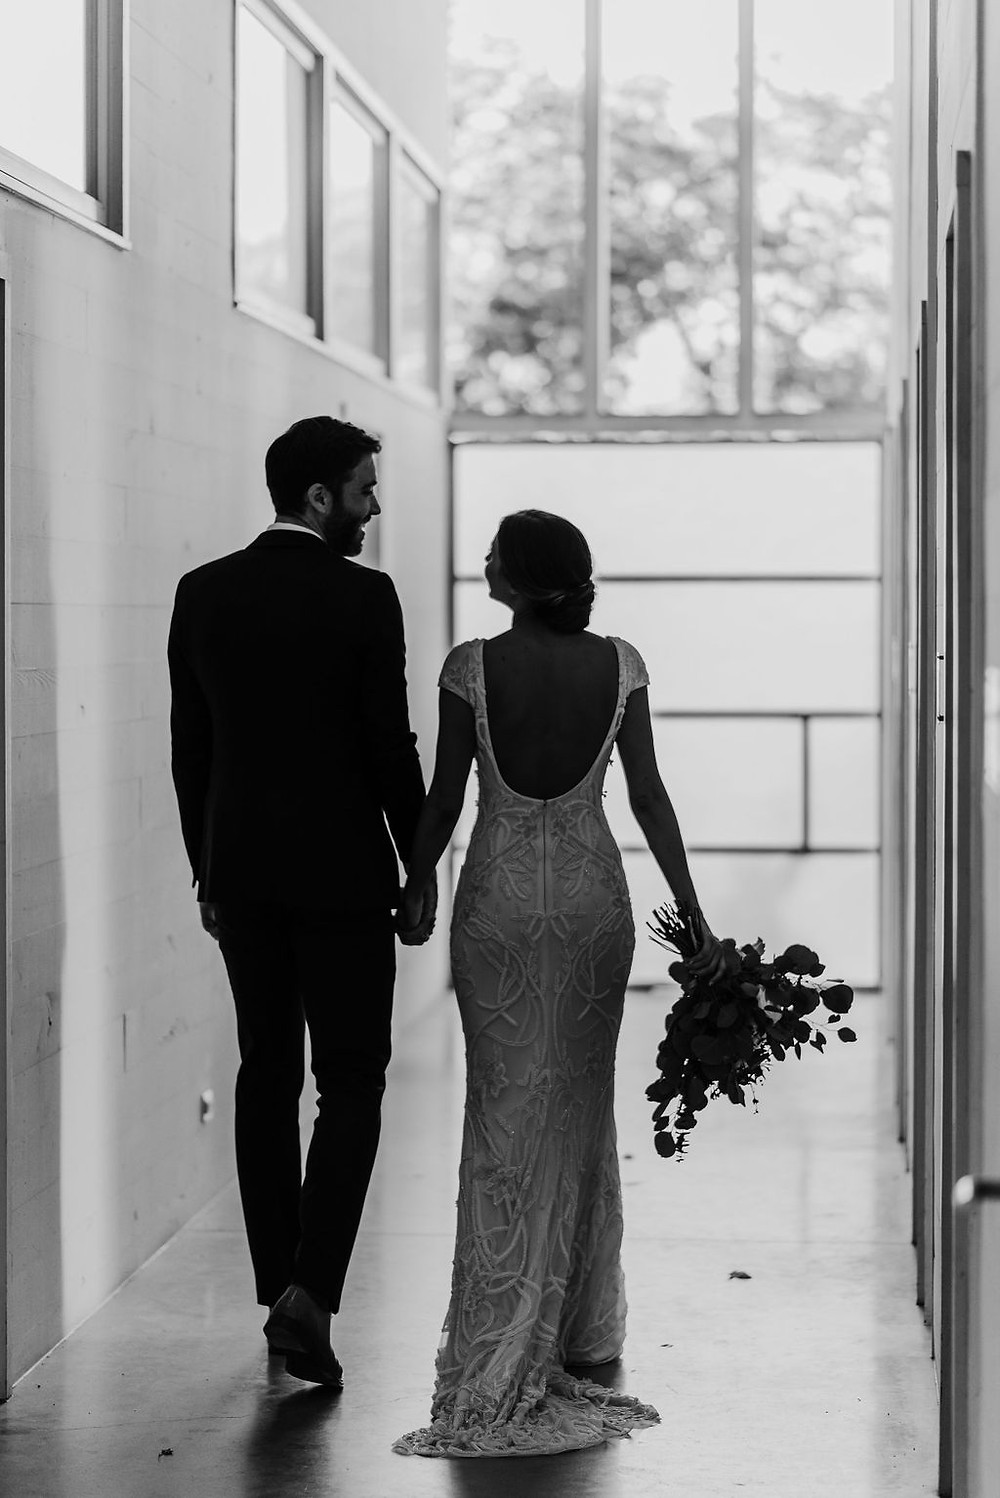 silhouette photo of bride and groom walking away from the camera in a hallway